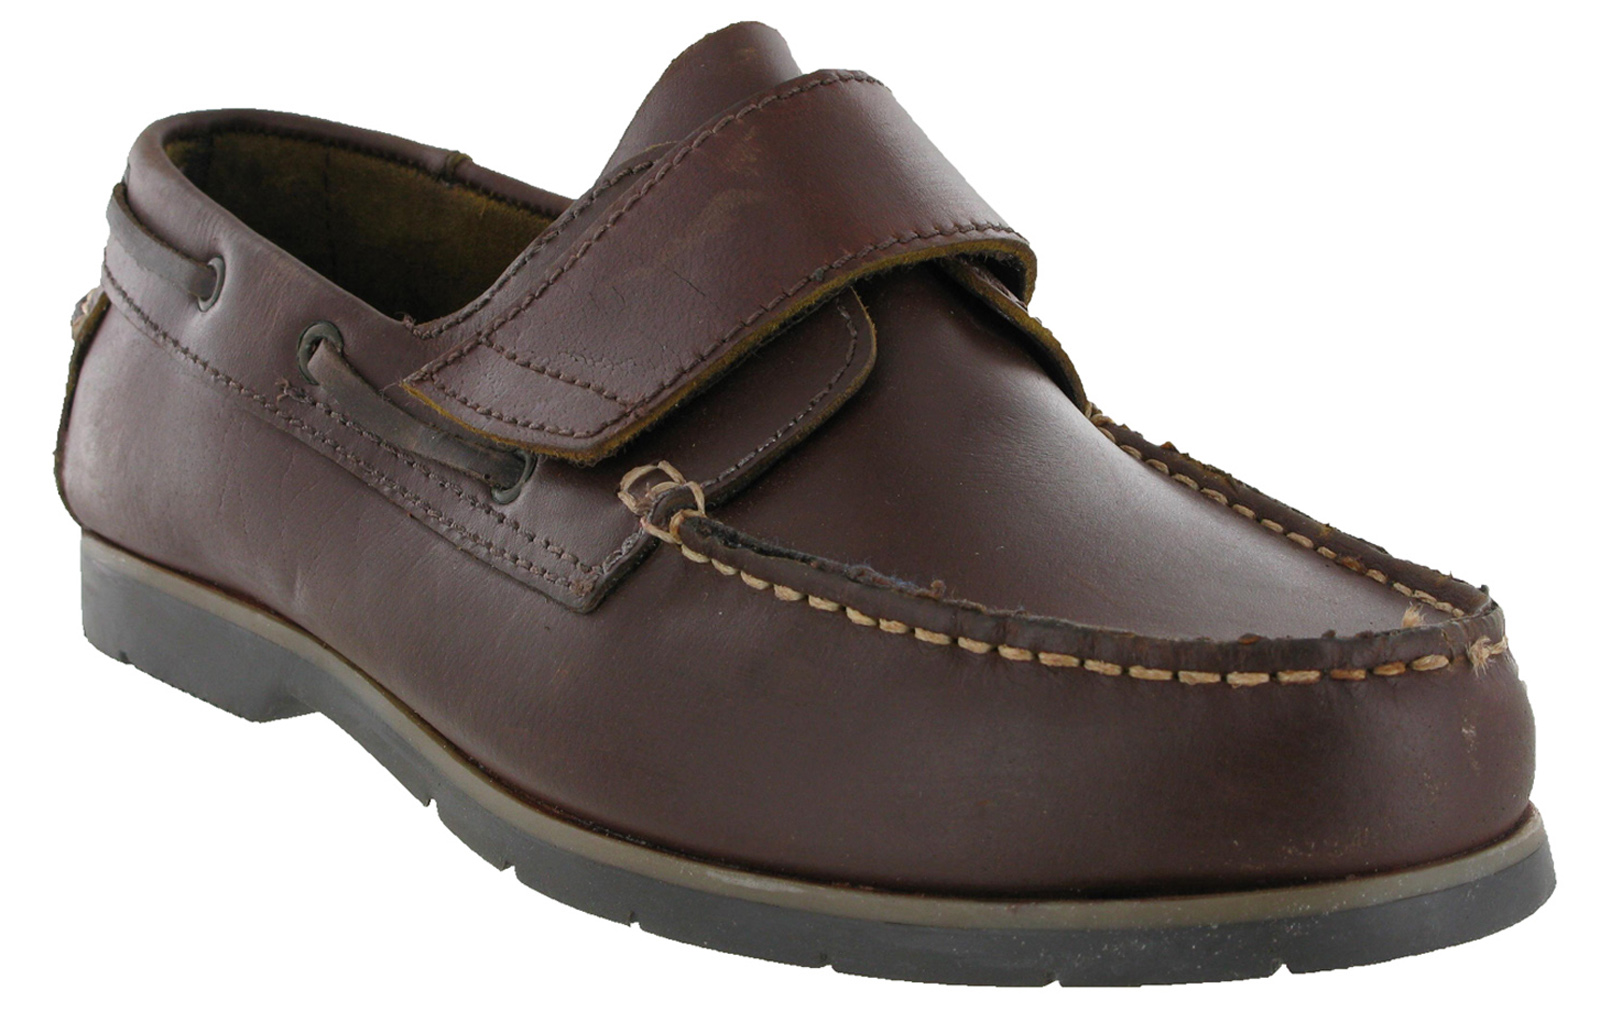 mens chums leather brown velcro fastening boat deck casual